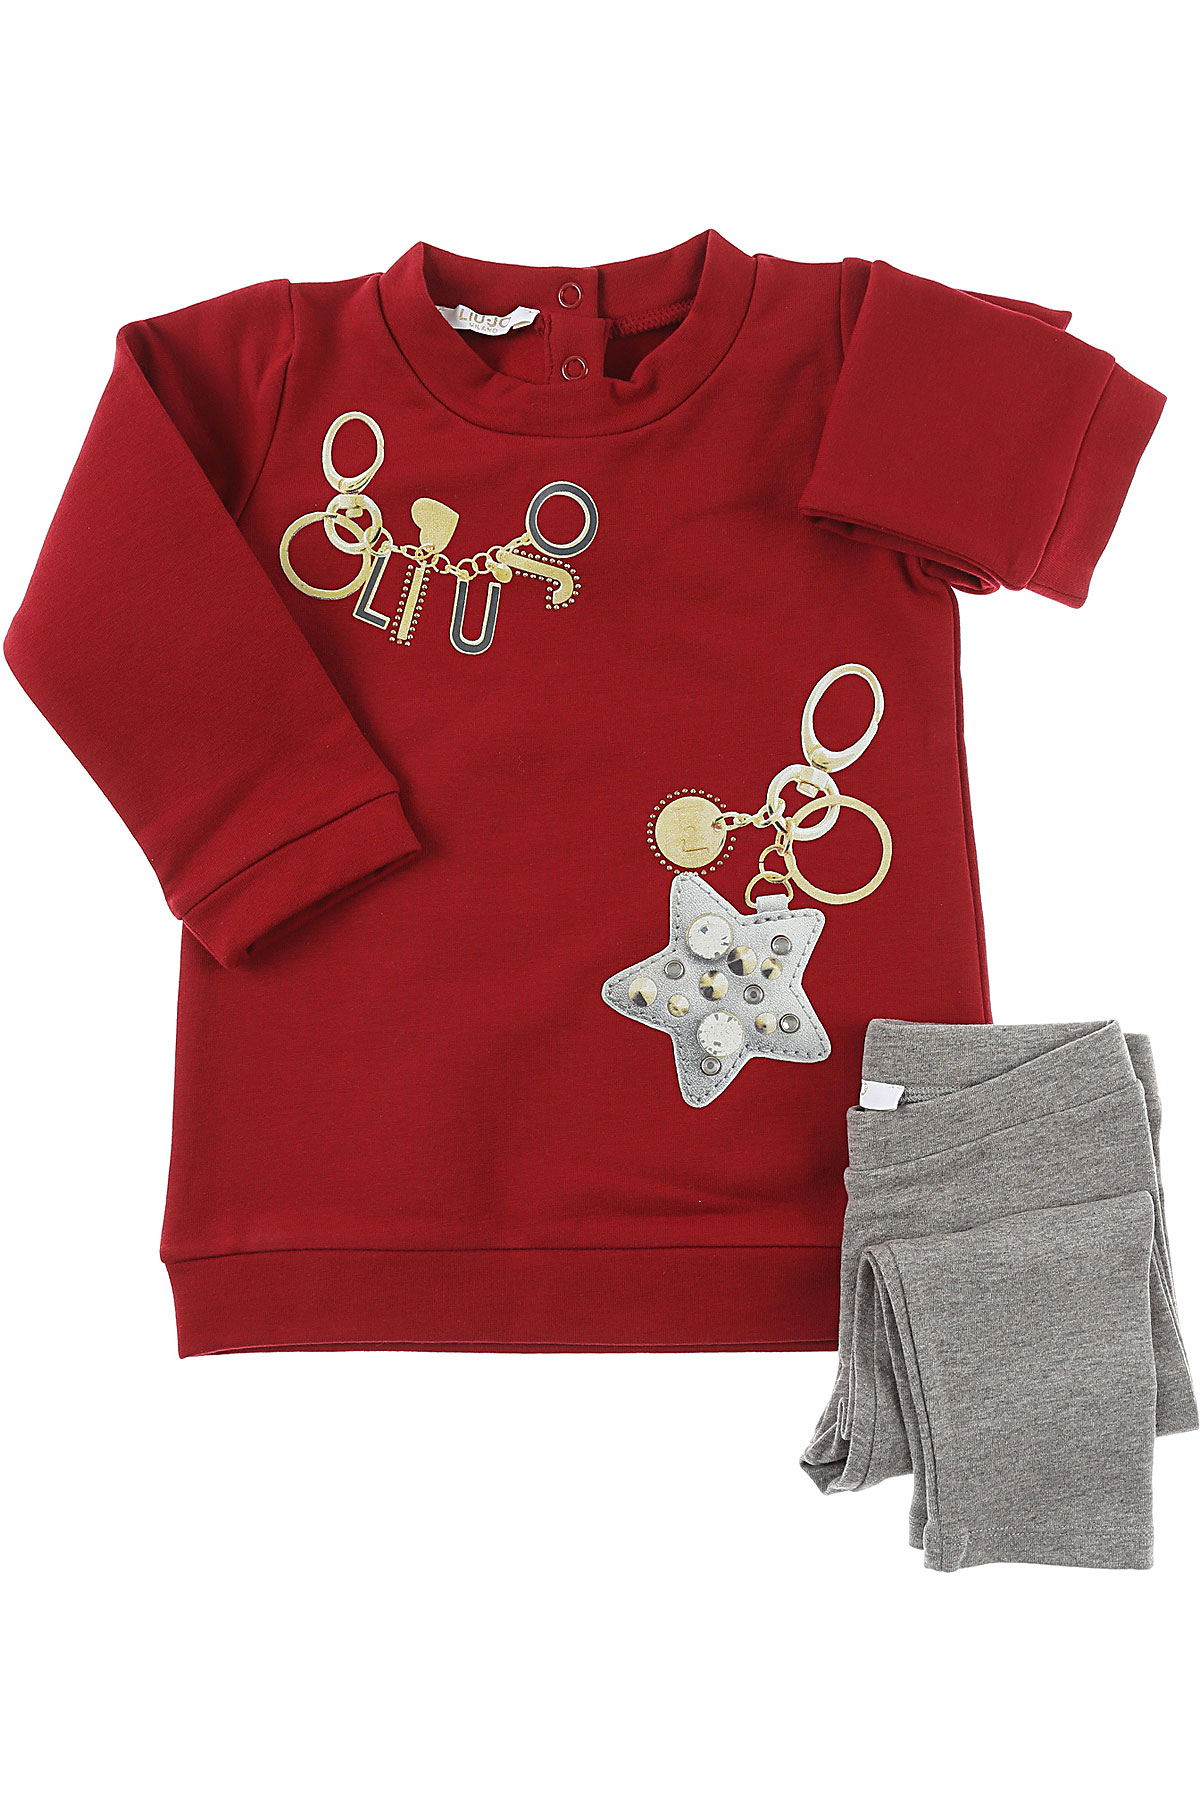 Image of Liu Jo Baby Sets for Girls, Red, Cotton, 2017, 12M 6M